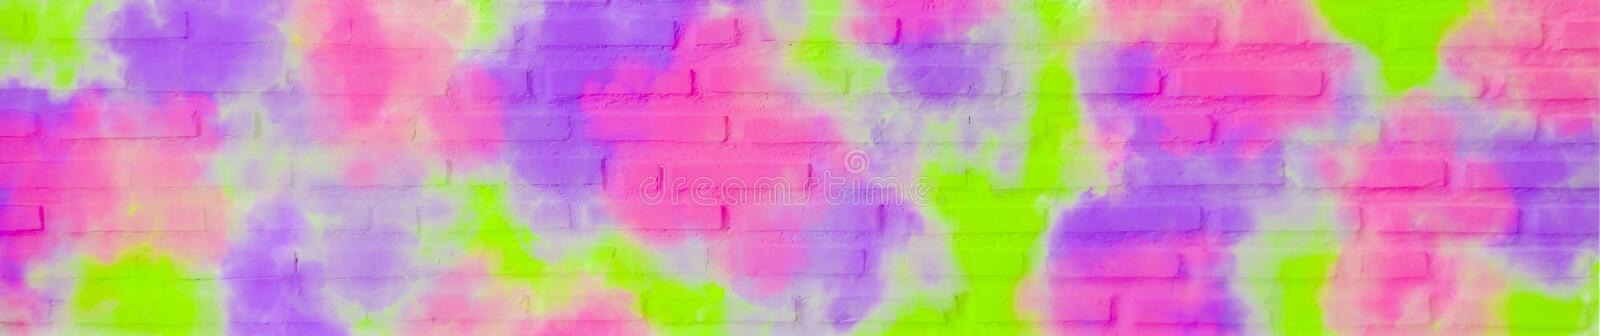 Texture of white brick wall with rough surface, banner horizontal for decorating websites or using blank empty ads and copy space stock images